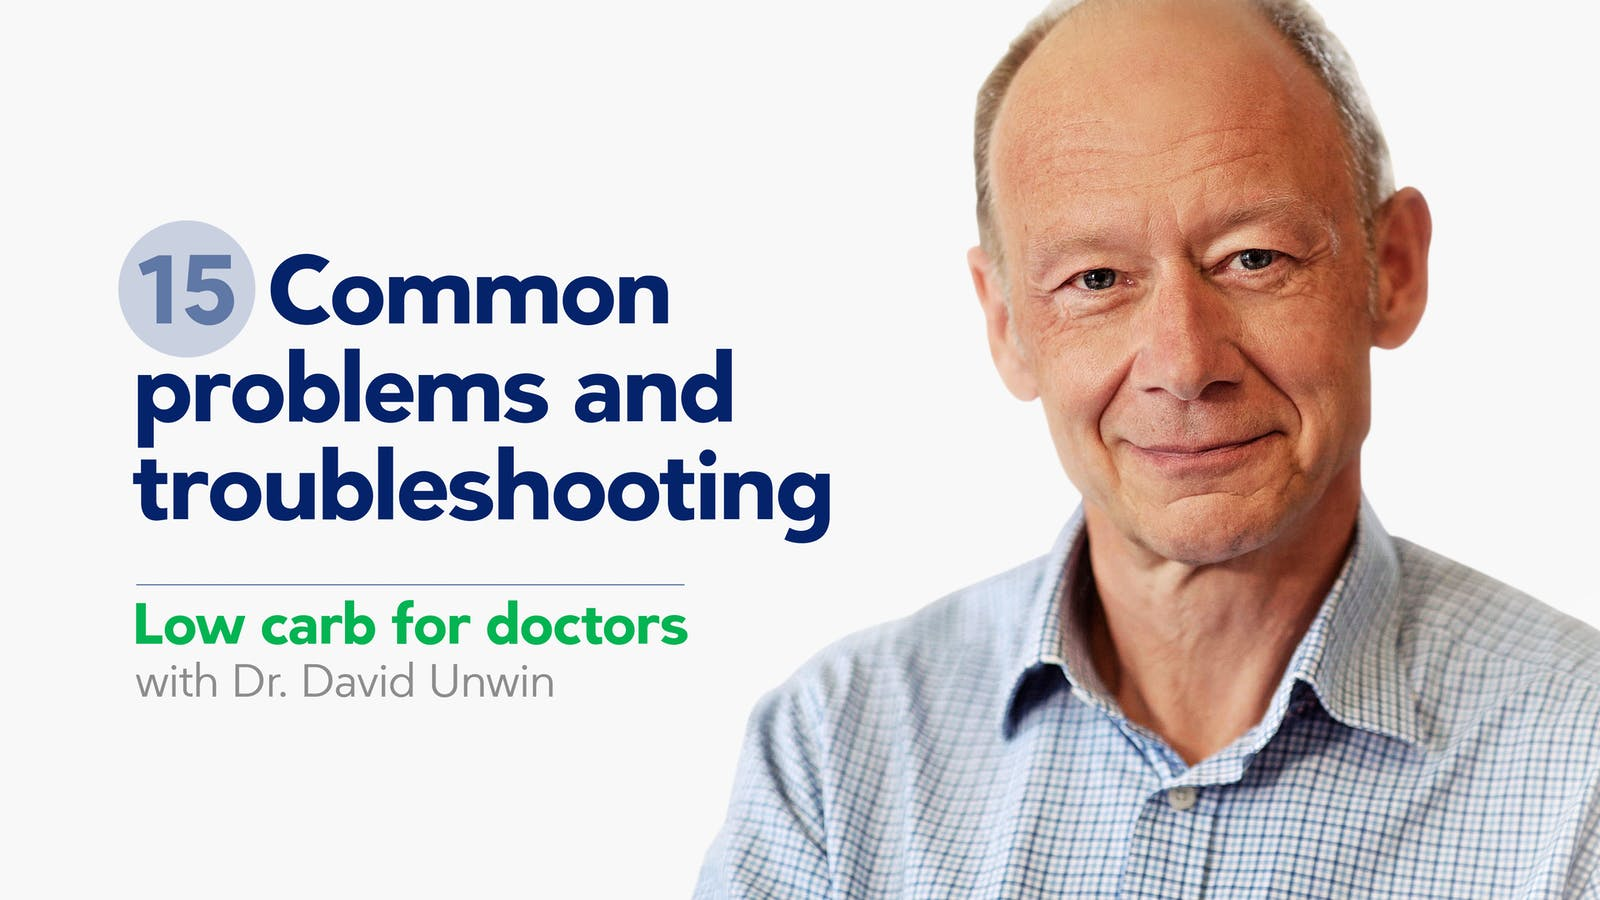 Low carb: Common problems and troubleshooting - Diet Doctor